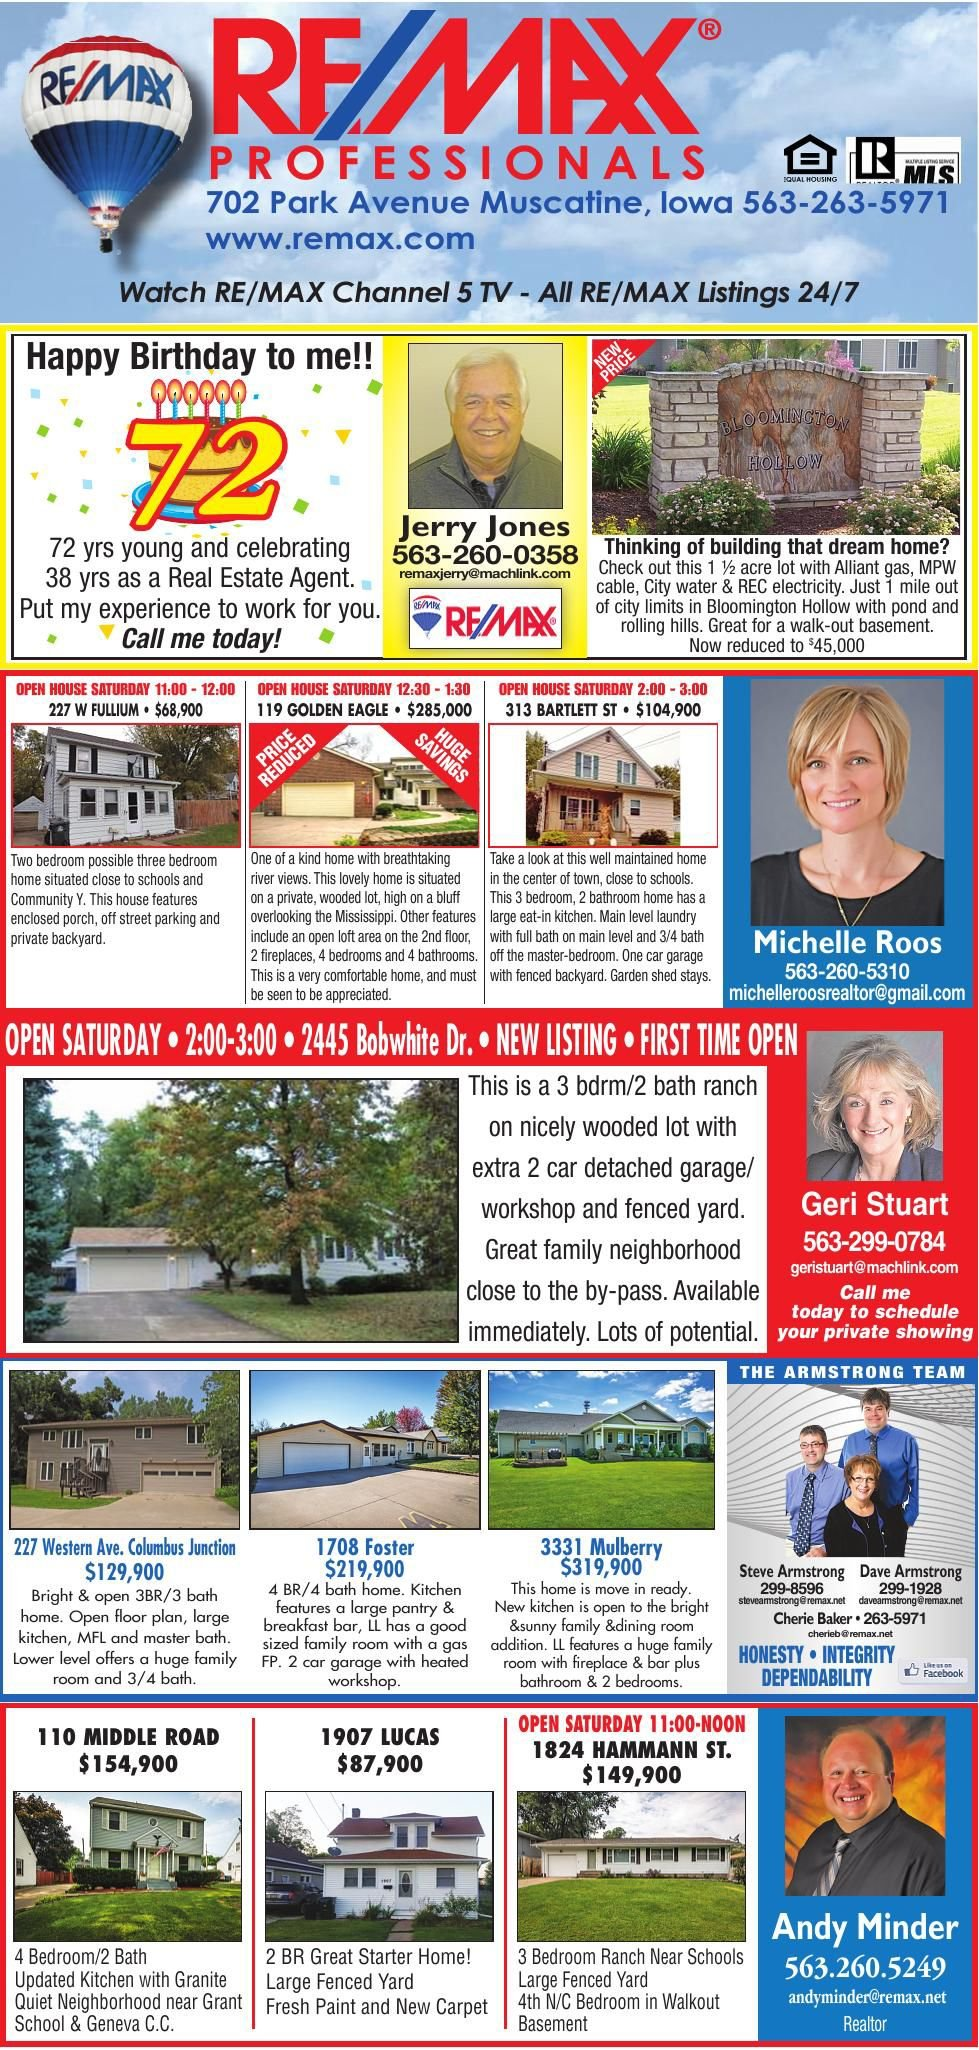 REMAX - Ad from 11-04